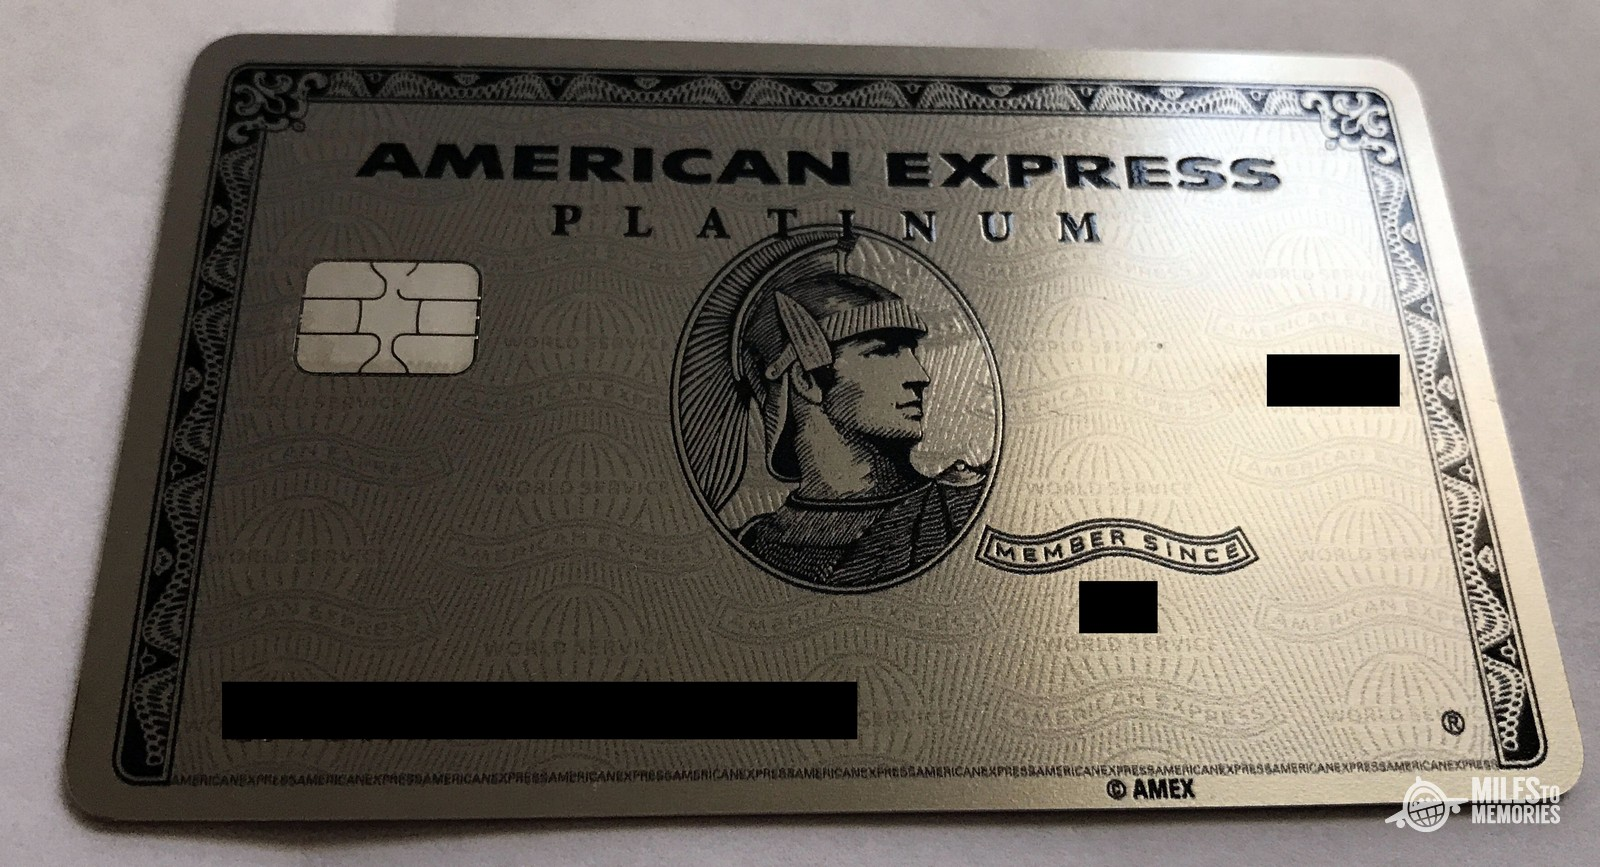 American Express: No Fee Changes/Cancels American Airlines Flights